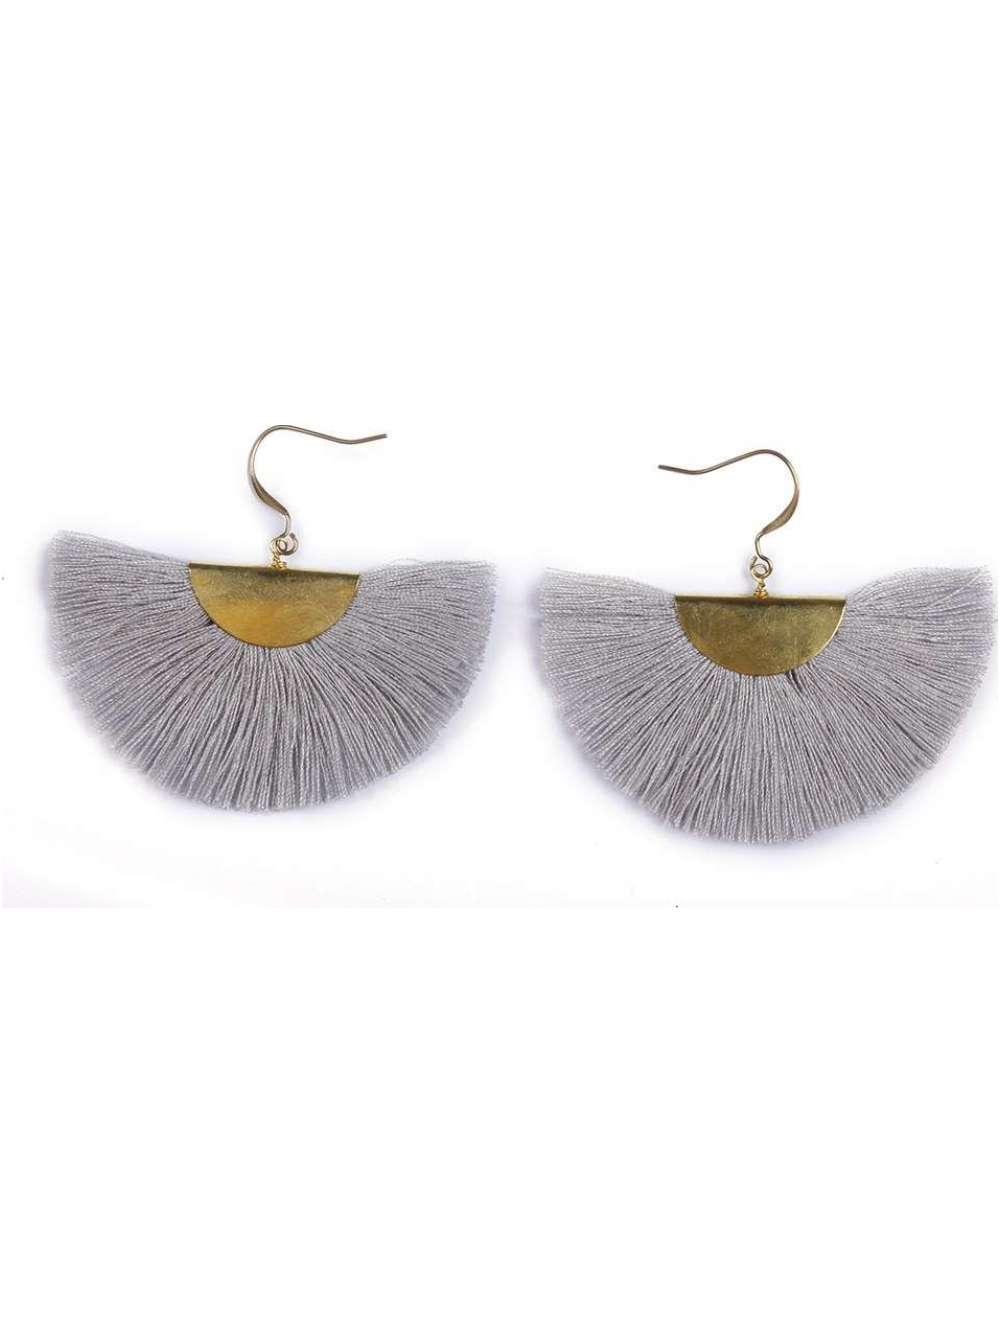 Grey Fringe Earrings - Cause-ology